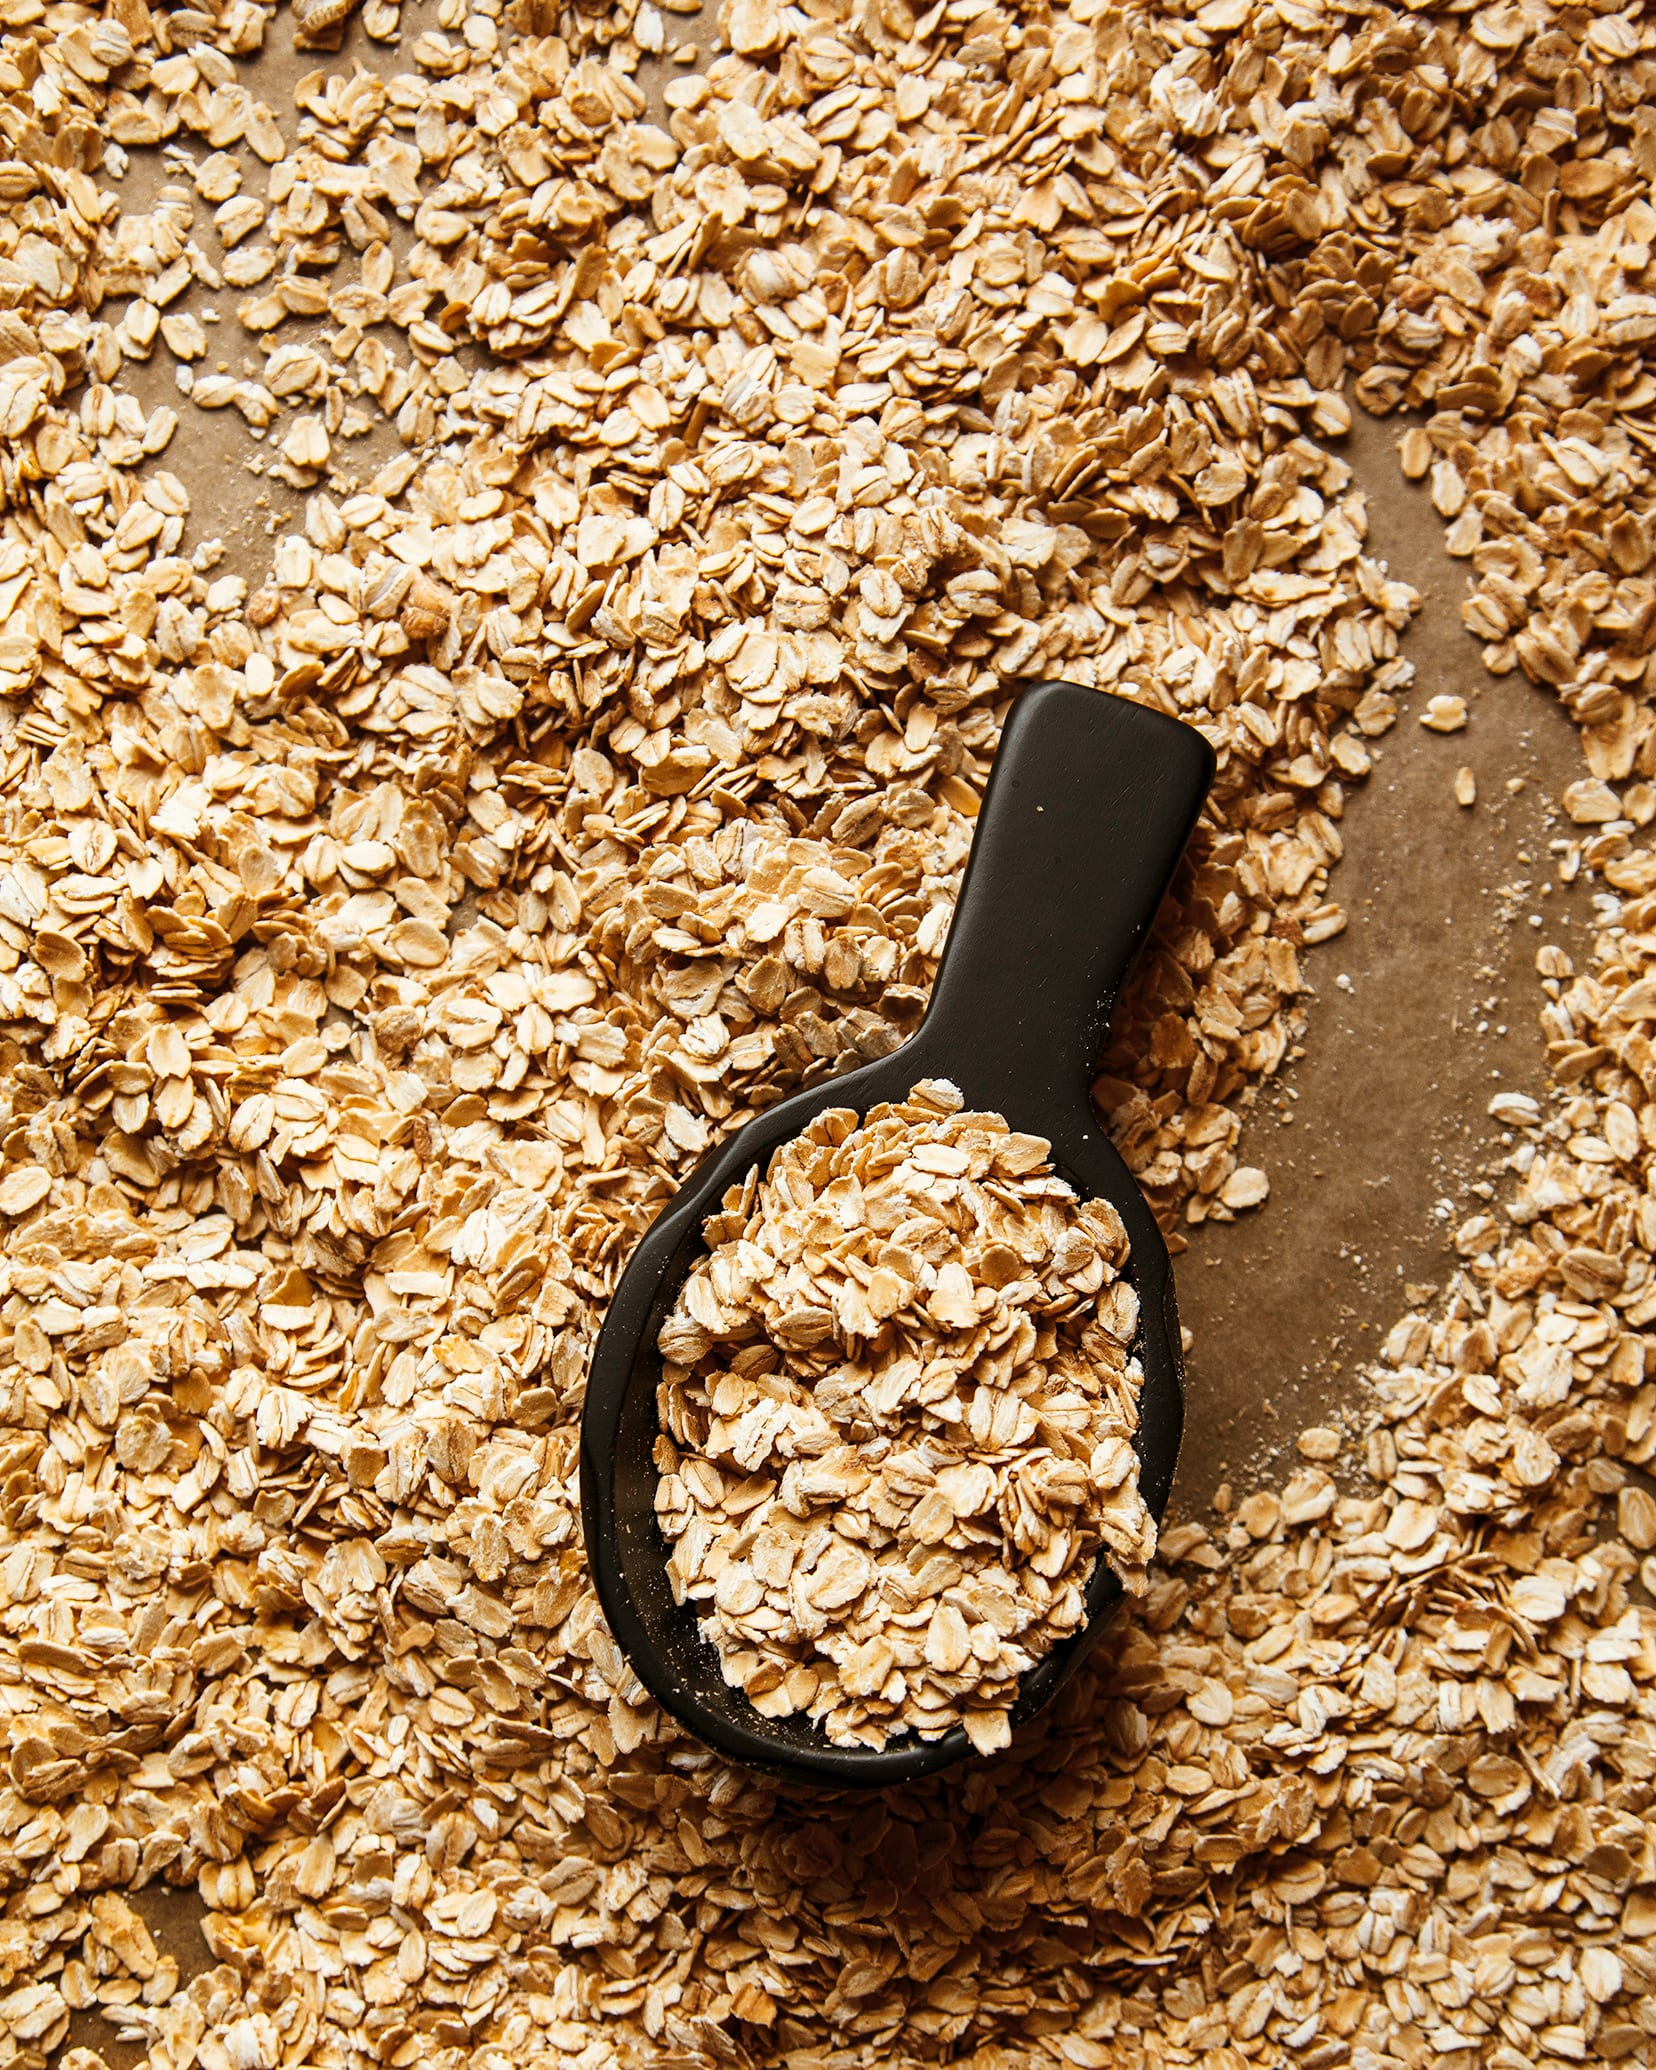 Overhead shot of toasted oats with a black scoop.